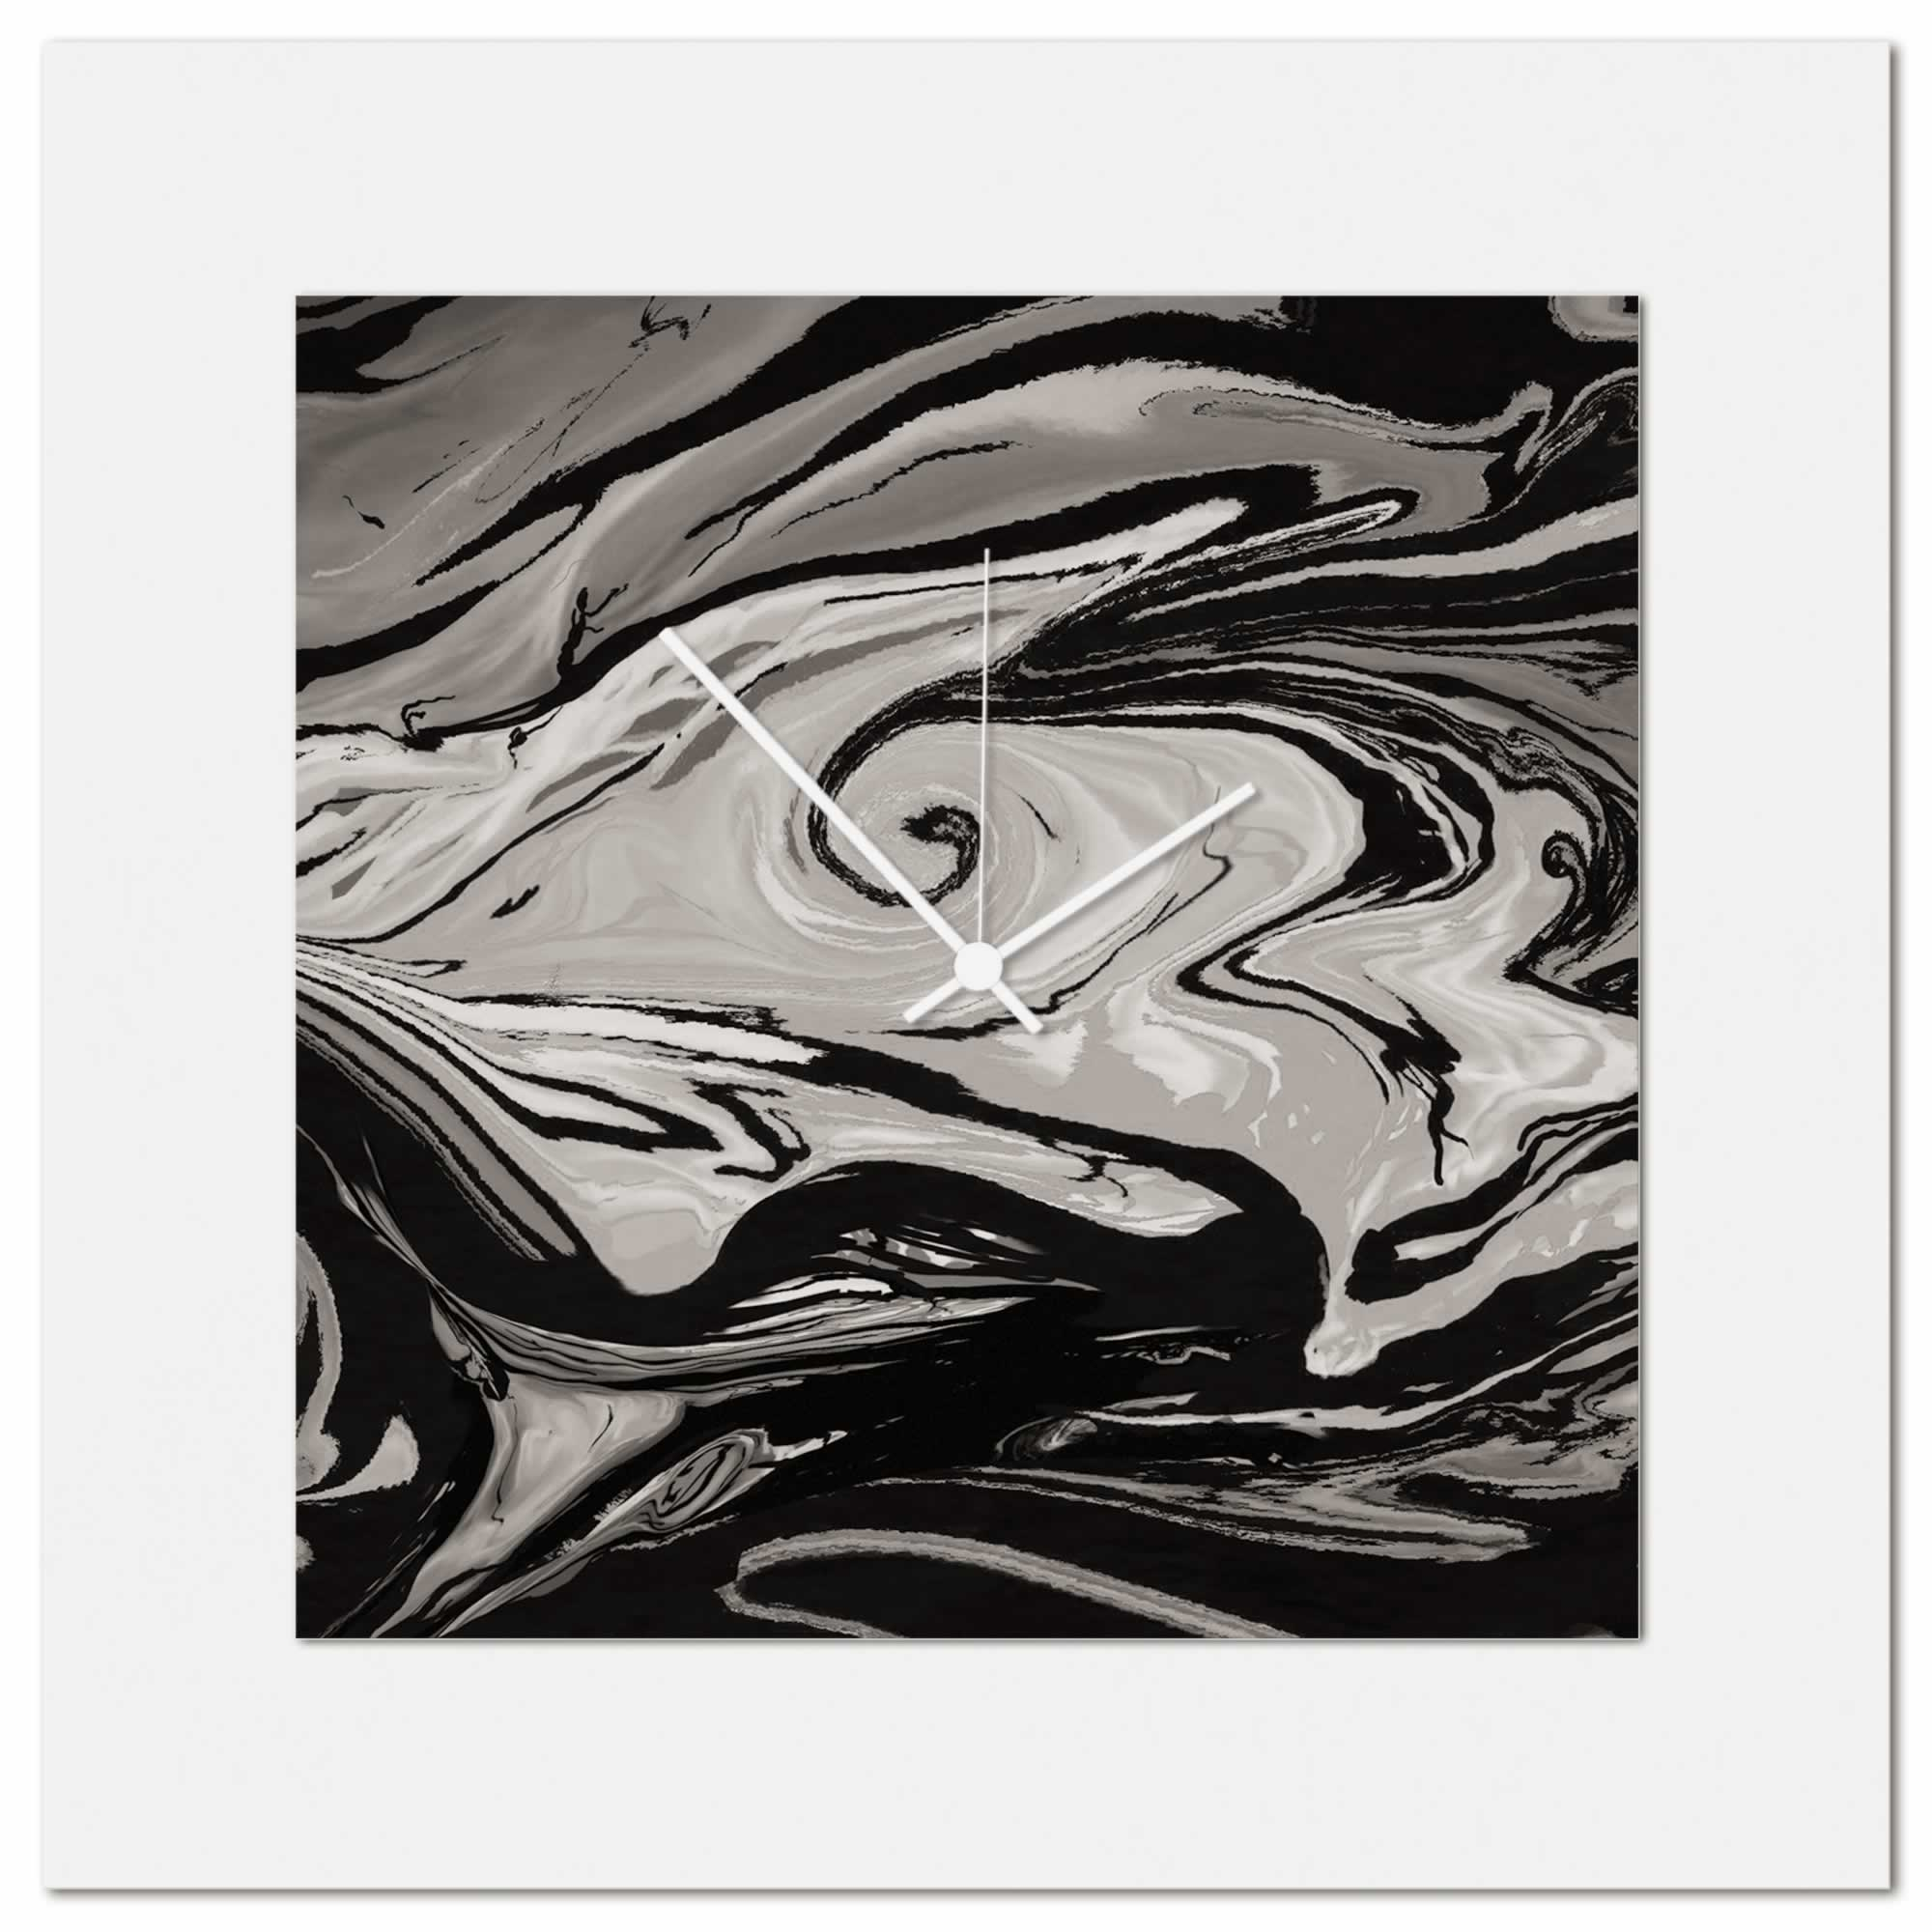 Grey and Black Swirl Clock by Eric Waddington Multimedia Abstract Wall Decor - Alternate View 1